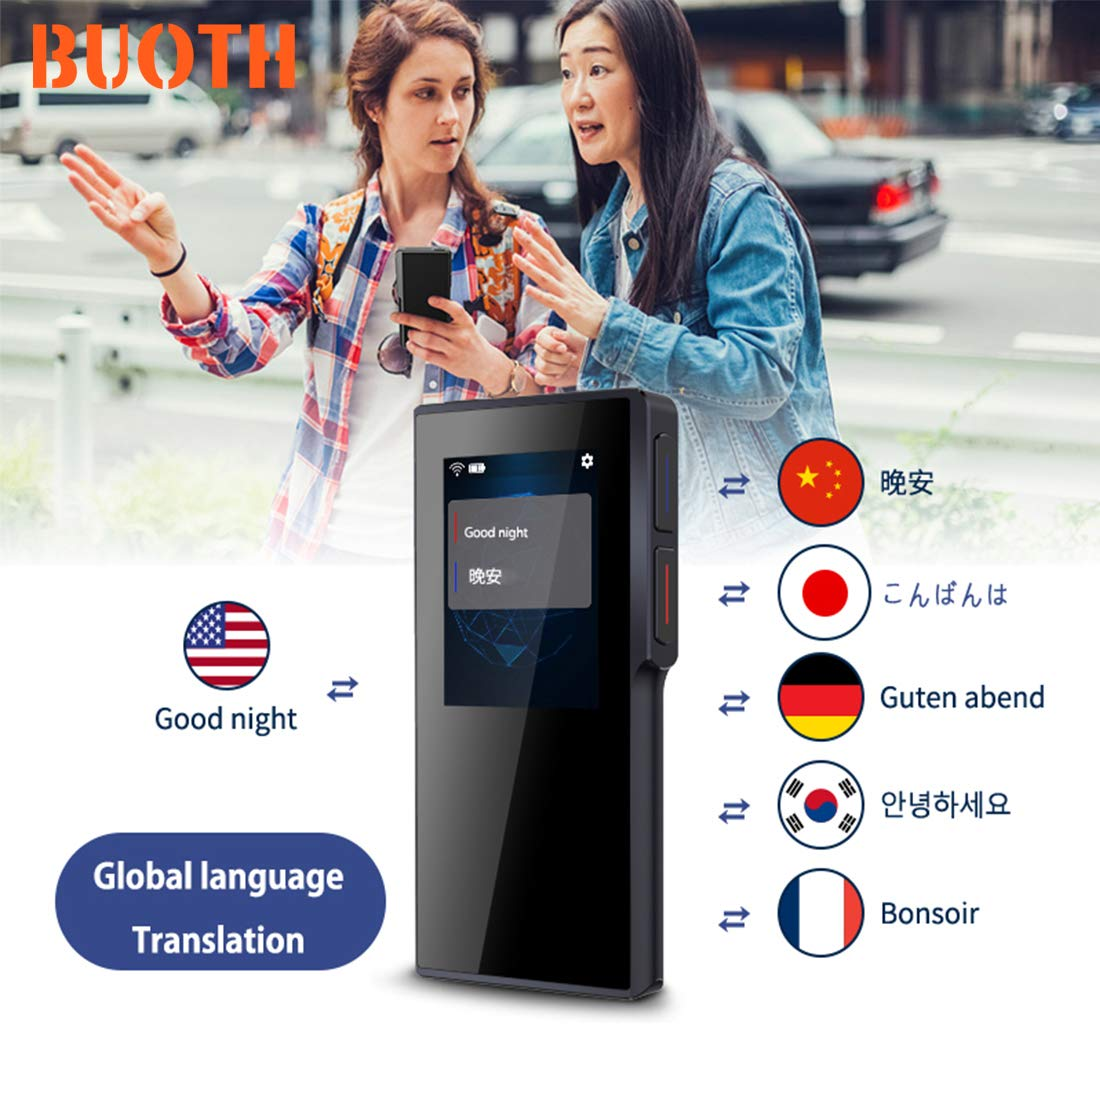 BUOTH Smart Voice Translator Device,70 Languages Instant Two Way Translation with 2.4 Inch Touch Screen Portable for Travelling Learning Business Shopping Meeting by Buoth (Image #3)